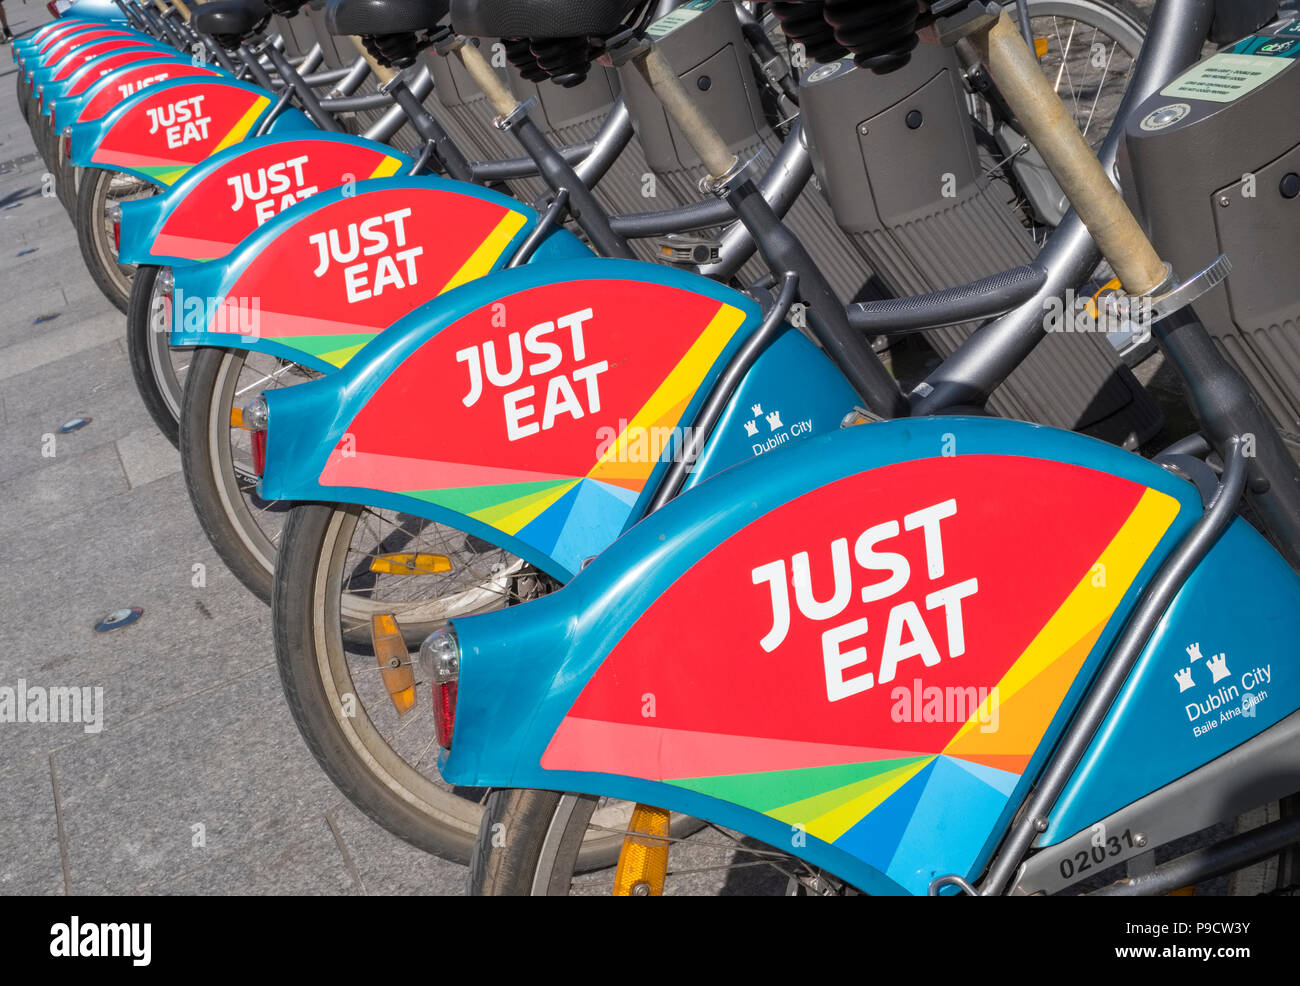 Just Eat logo sign on city bikes for hire in Dublin, Ireland, Europe - Stock Image